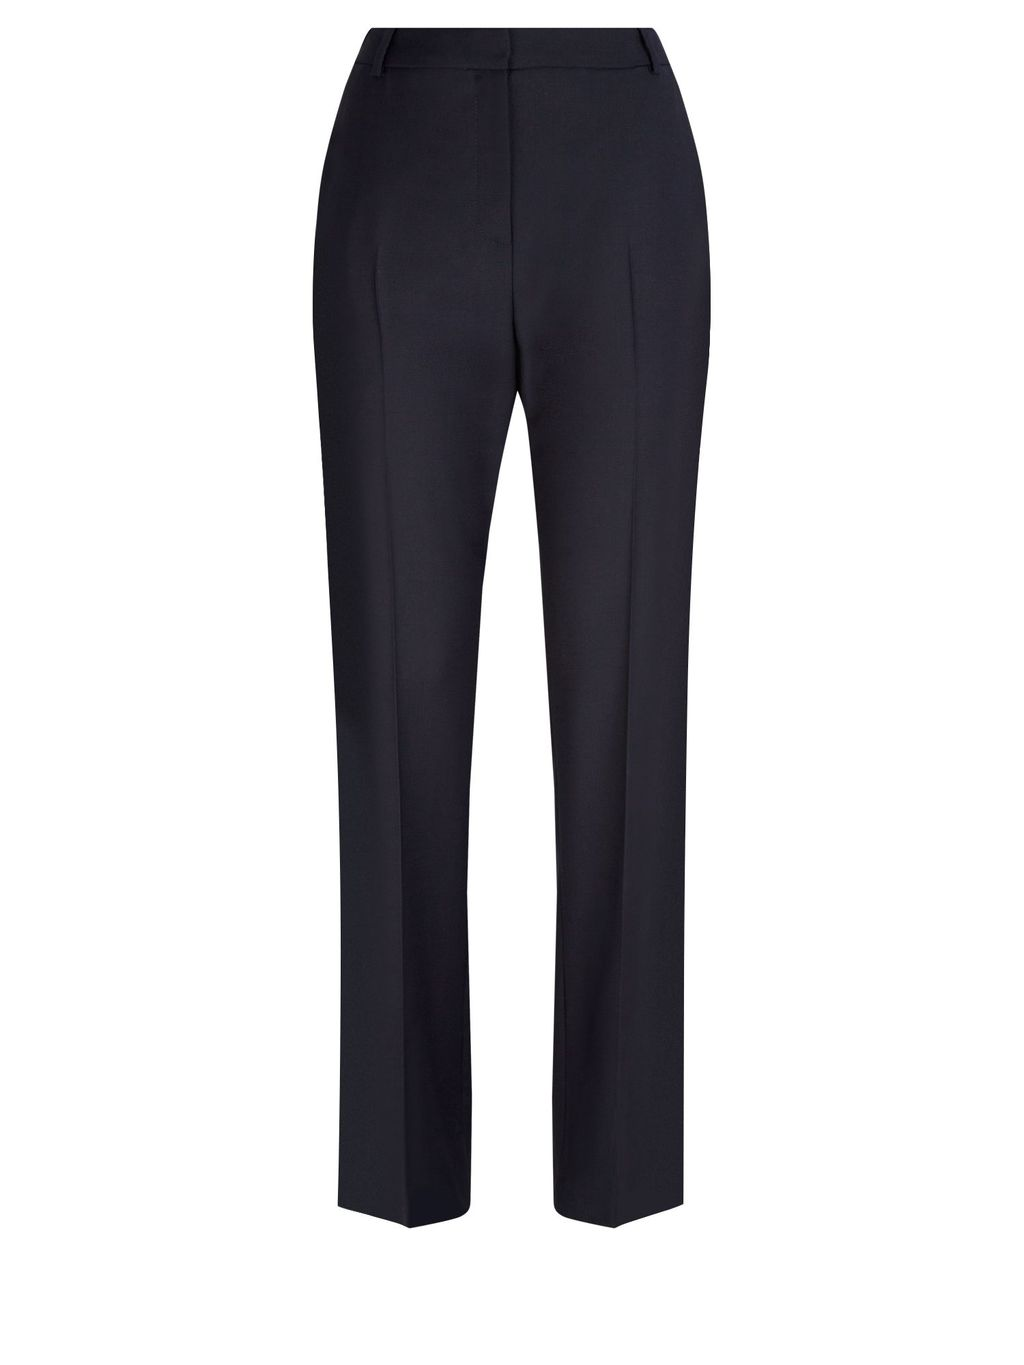 Chiltern Wool Stretch Trousers, Navy - length: standard; pattern: plain; waist: high rise; predominant colour: navy; occasions: work; fibres: wool - stretch; fit: straight leg; pattern type: fabric; texture group: woven light midweight; style: standard; season: a/w 2015; wardrobe: basic